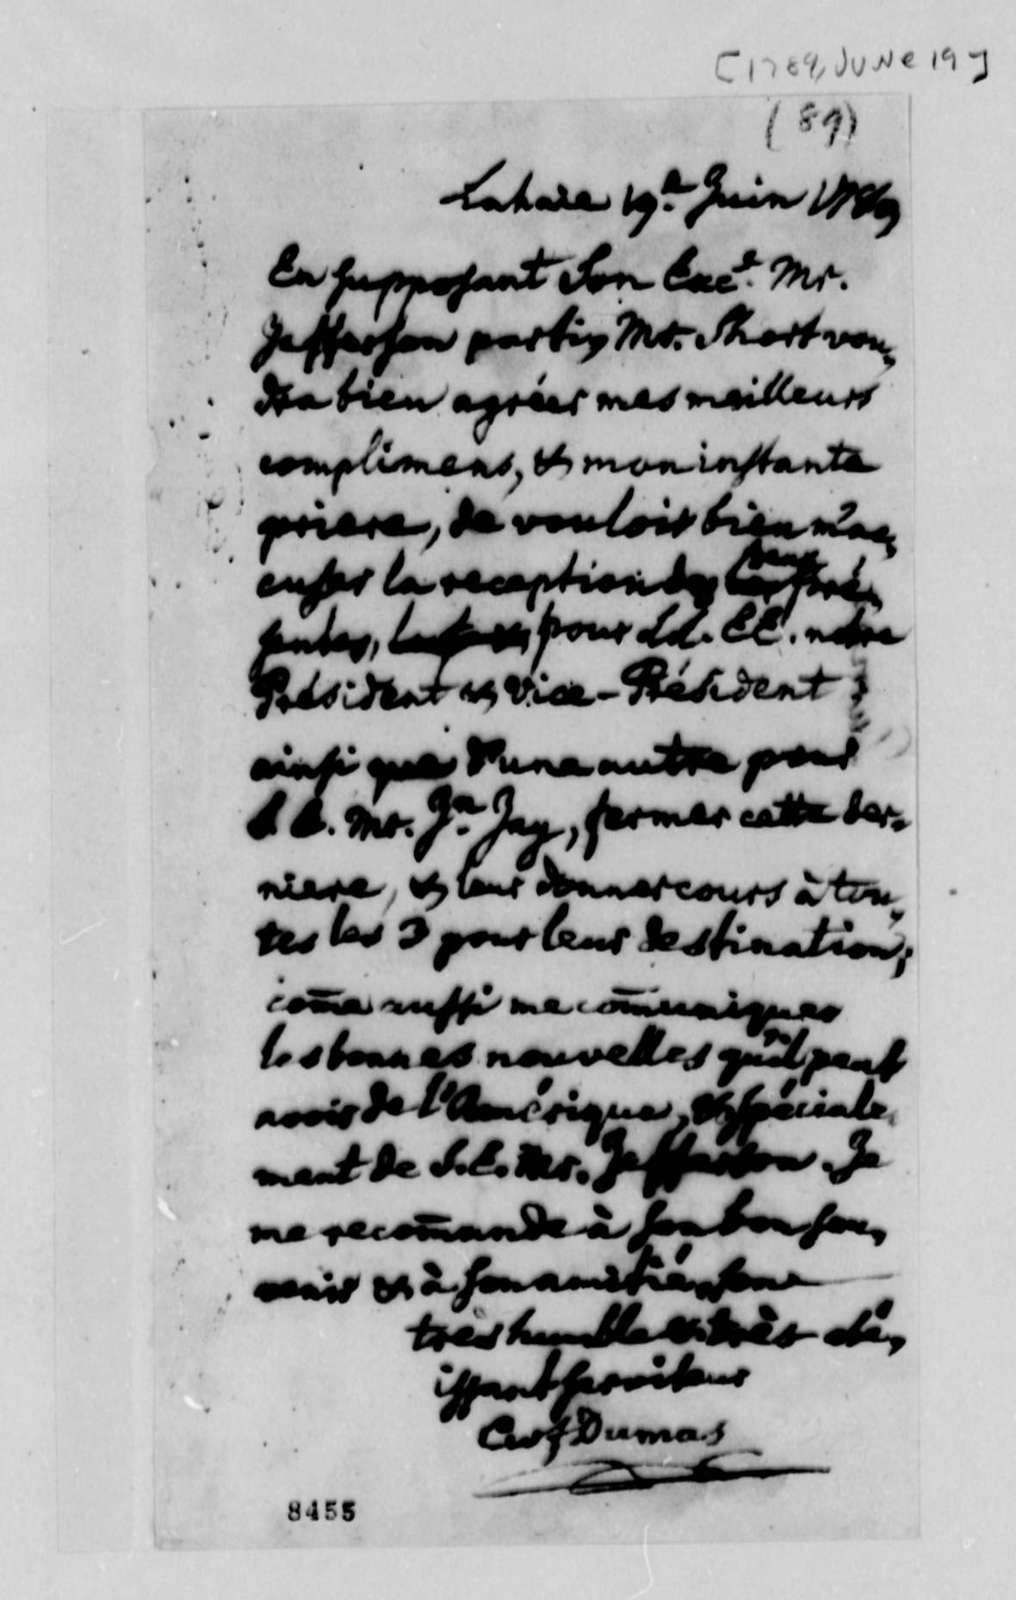 Charles W. F. Dumas to Thomas Jefferson, June 19, 1789, in French